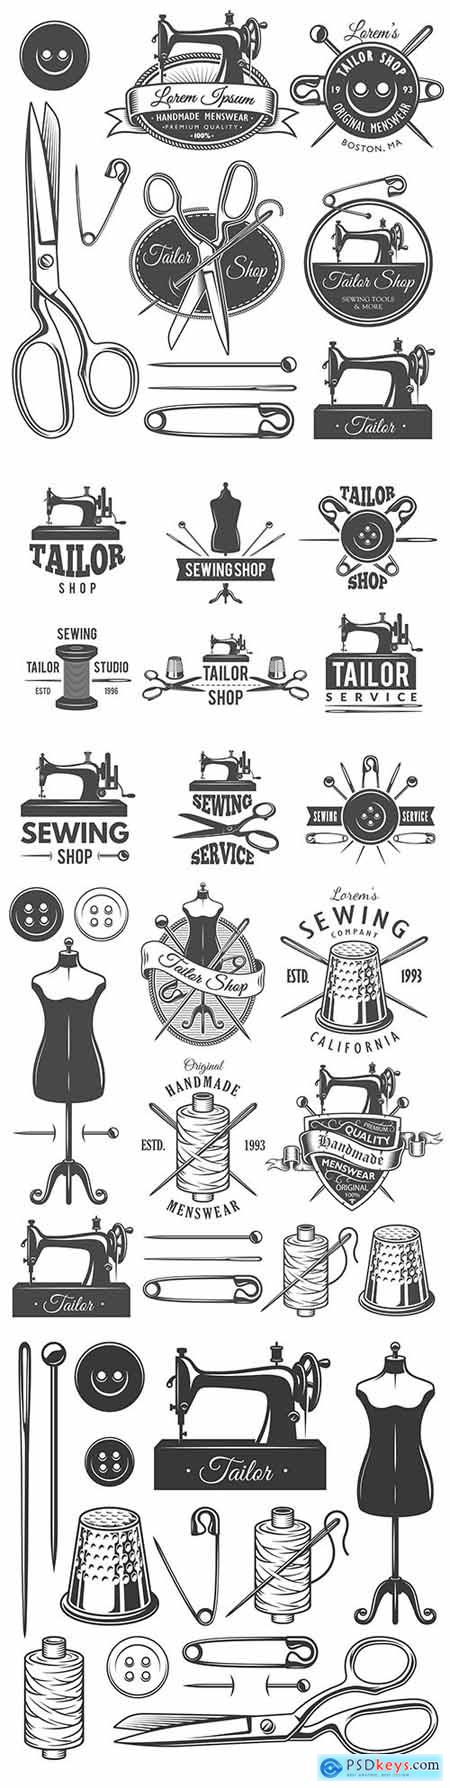 Tailor old monochrome elements and emblems vintage